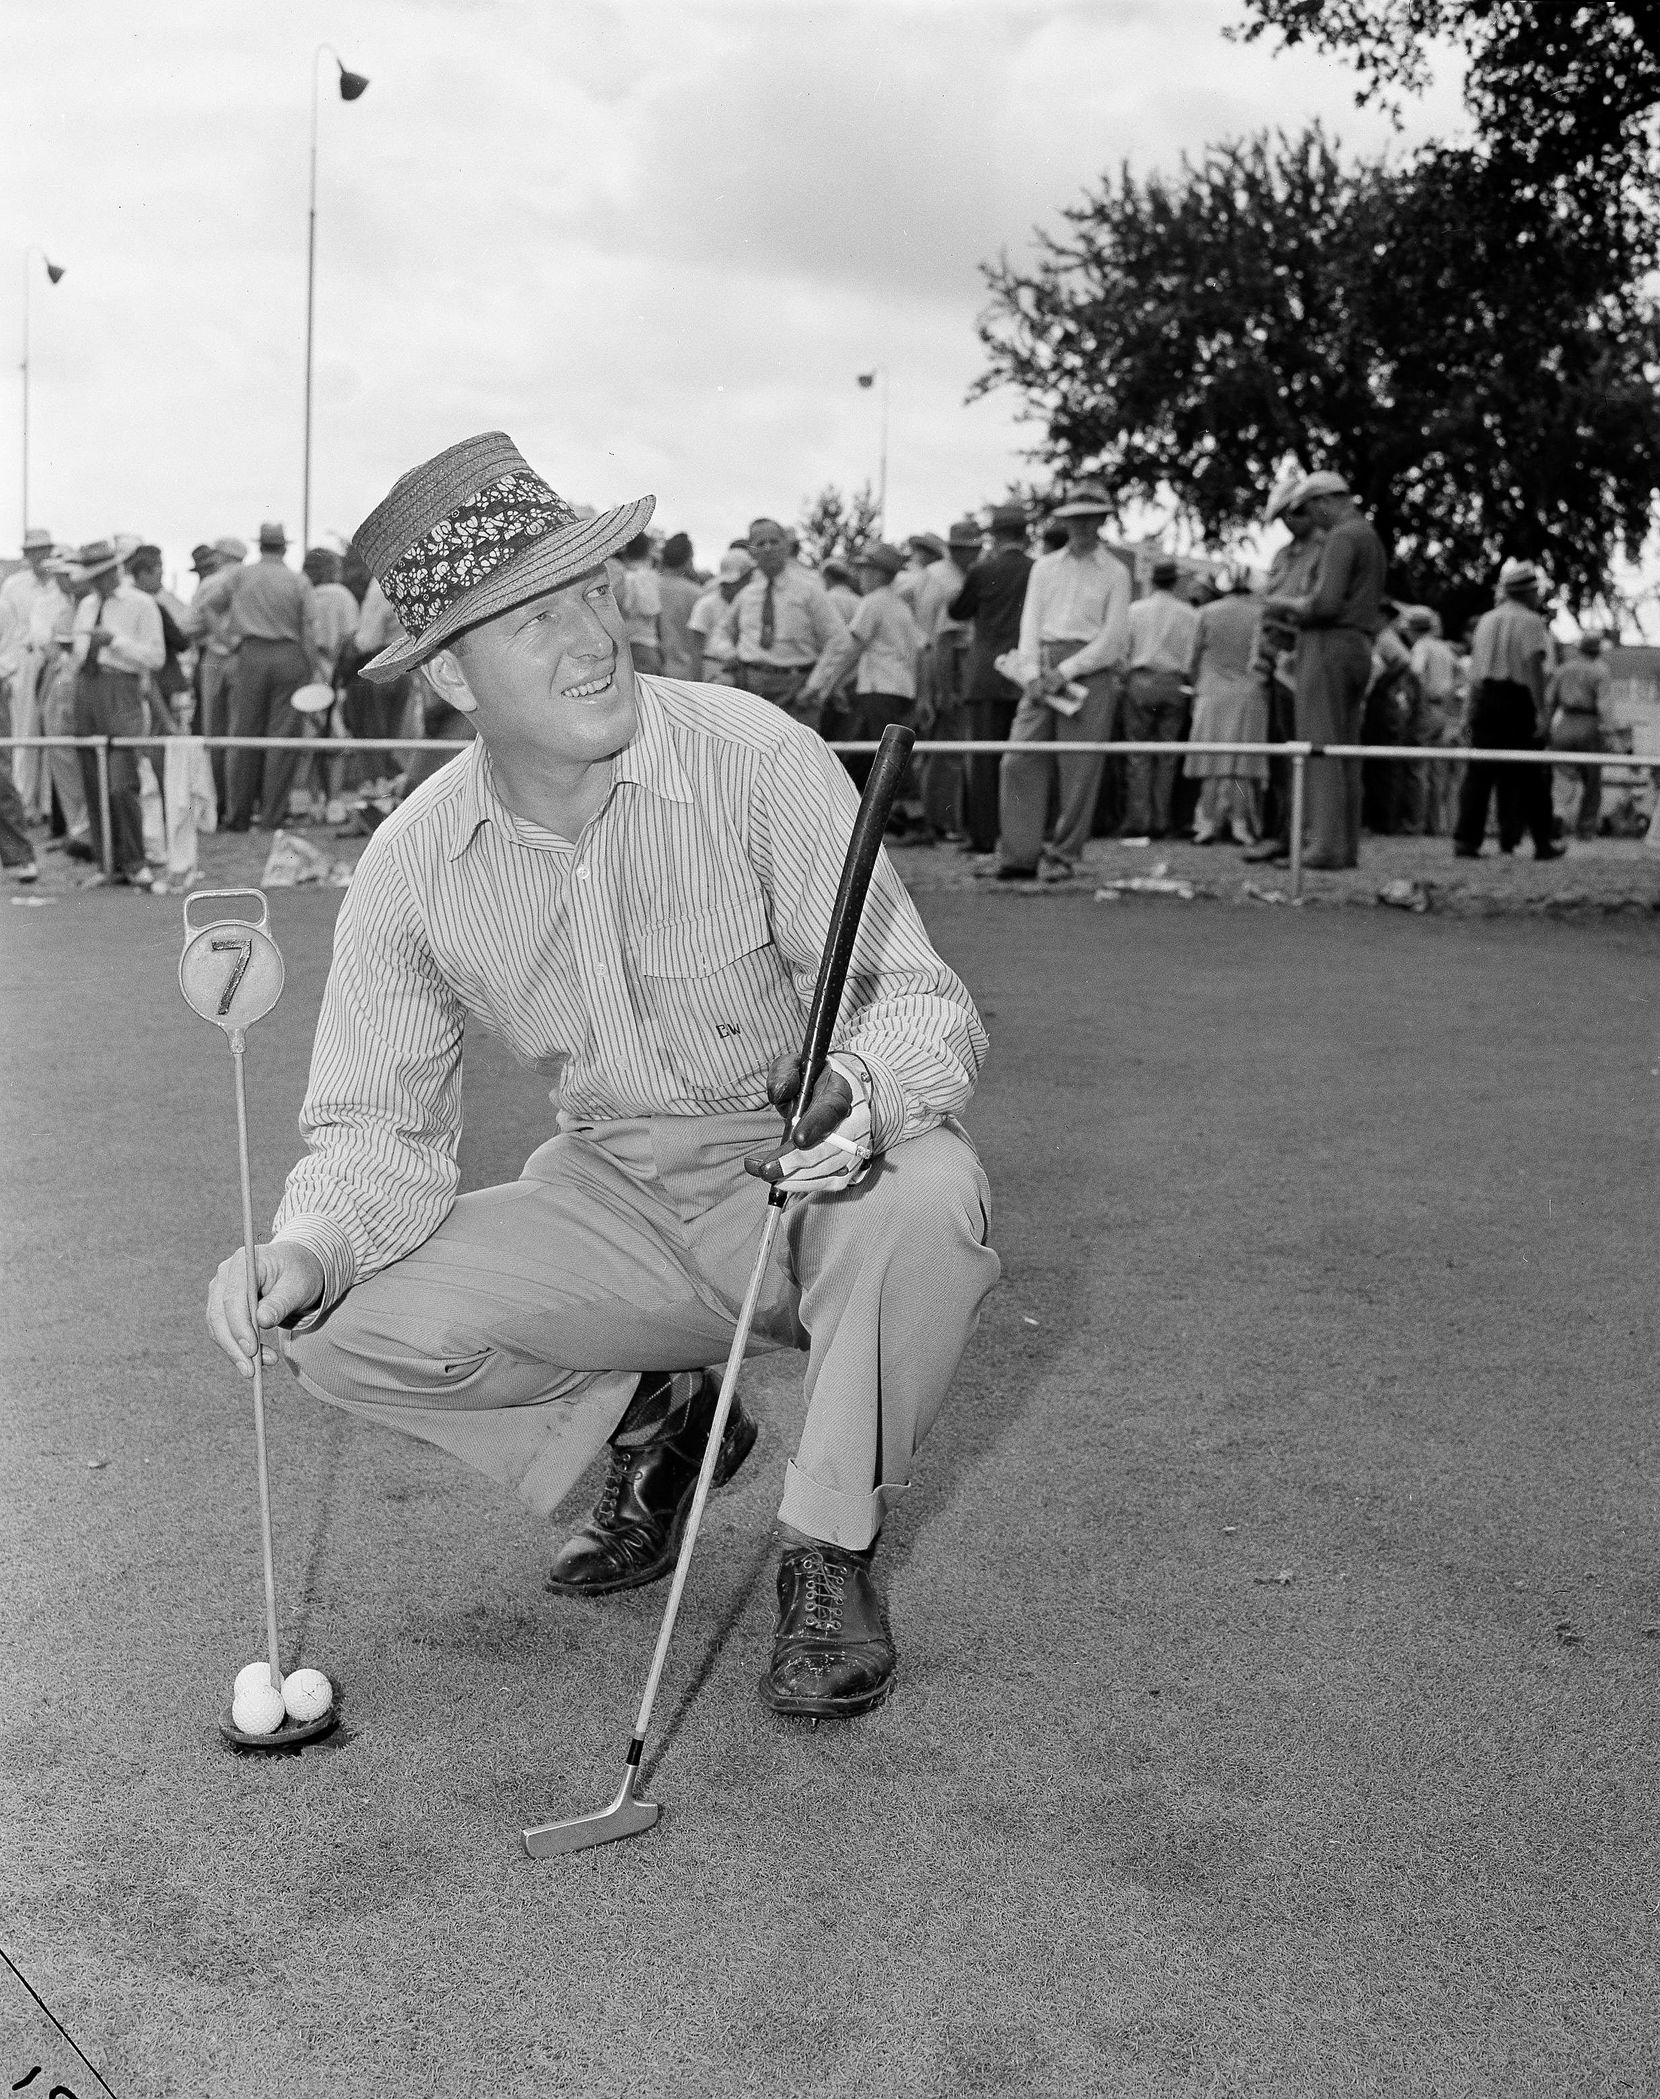 FILE - Craig Wood, winner of the U.S. Open golf tournament, poses for a photo on the final day at the Colonial Country Club in Fort Worth on June 7, 1941.